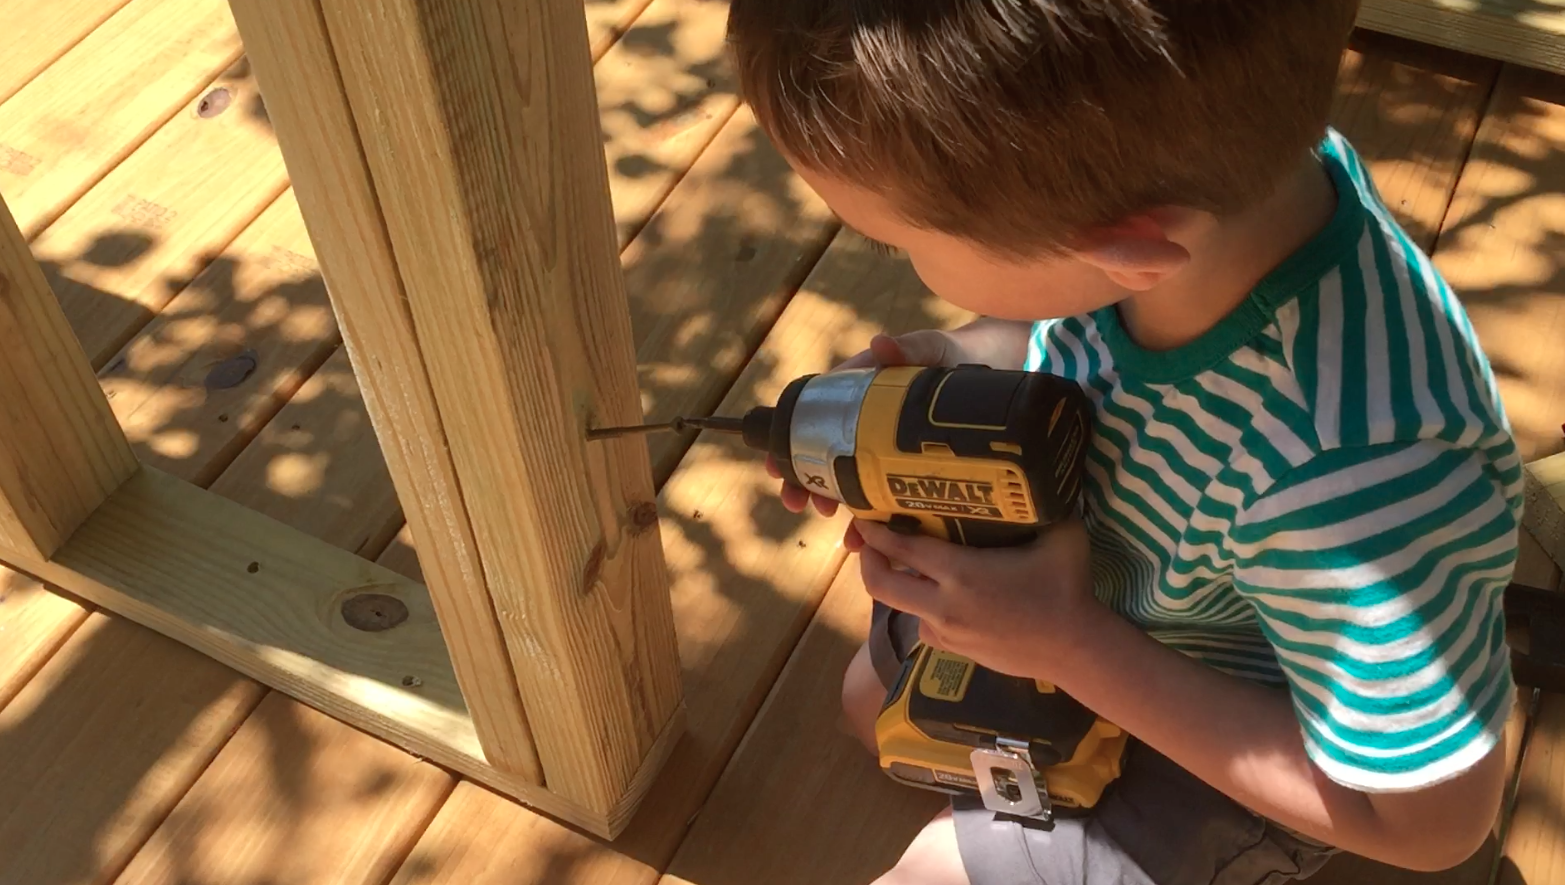 Ethan is putting in a screw to hold the door frame in place.